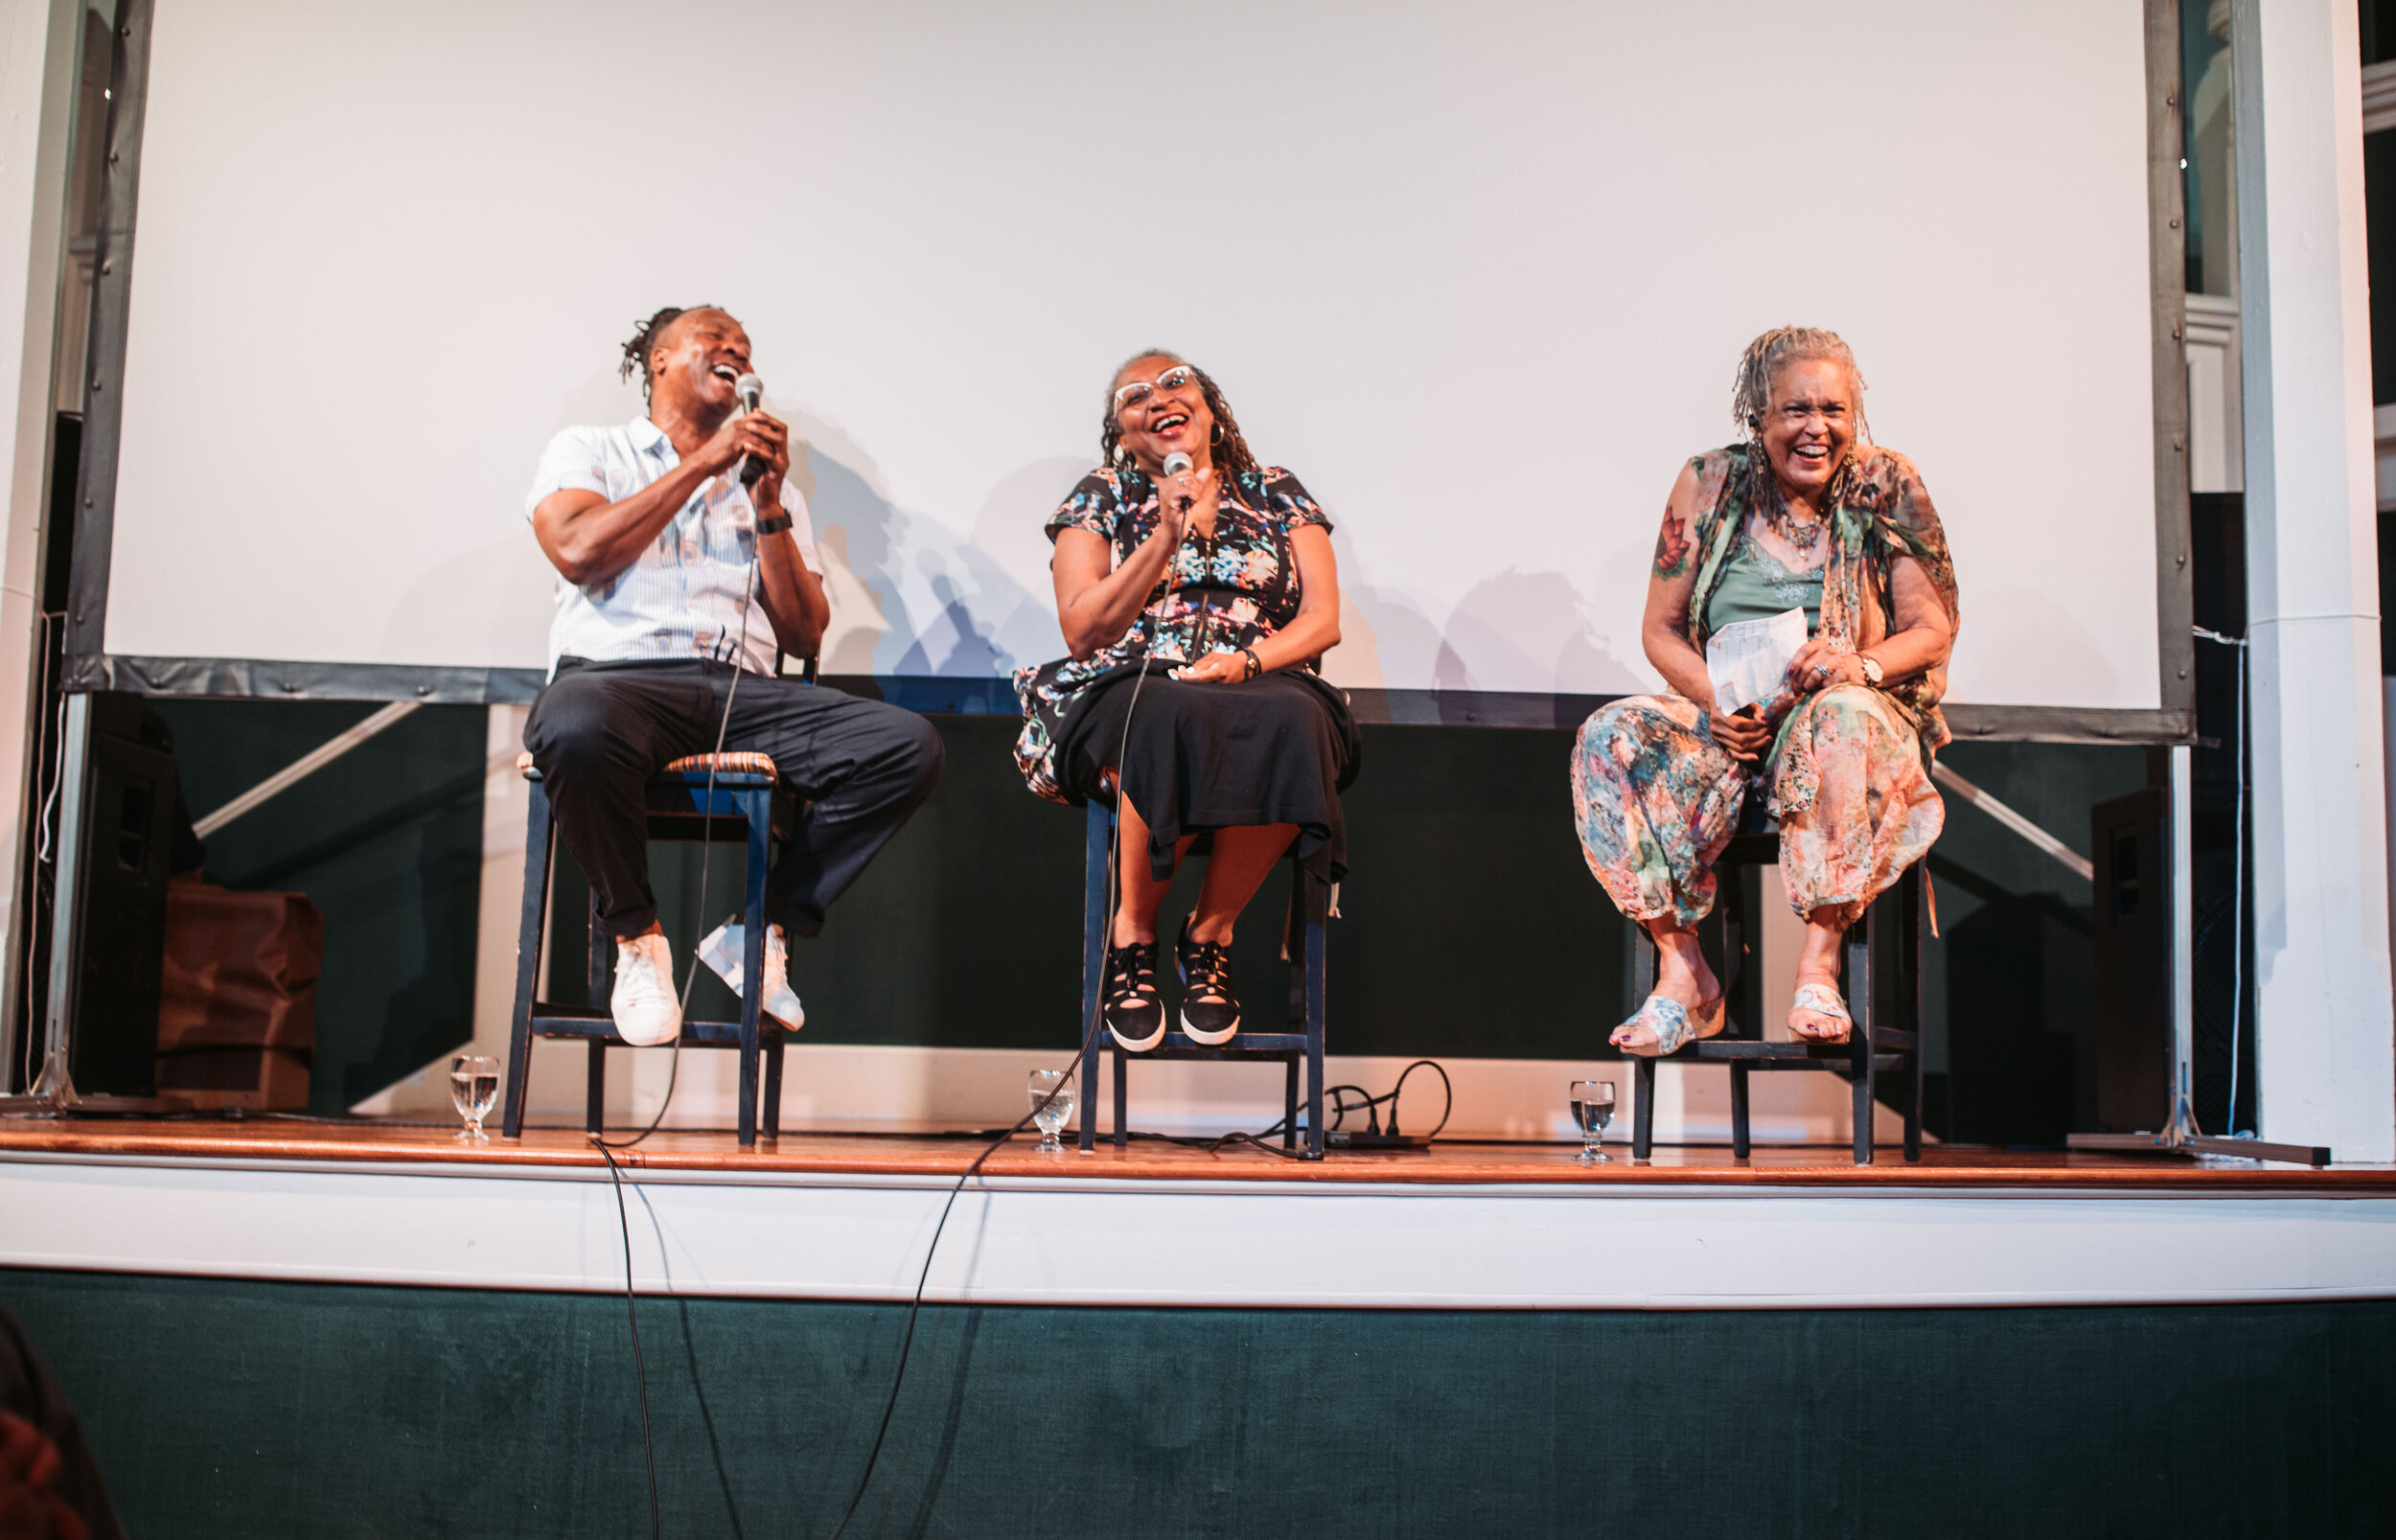 Discussion with director Roger Ross Williams and producer Lisa Cortés, moderated by Charlayne Hunter-Gault following THE APOLLO. Photo by Reece Robinson.